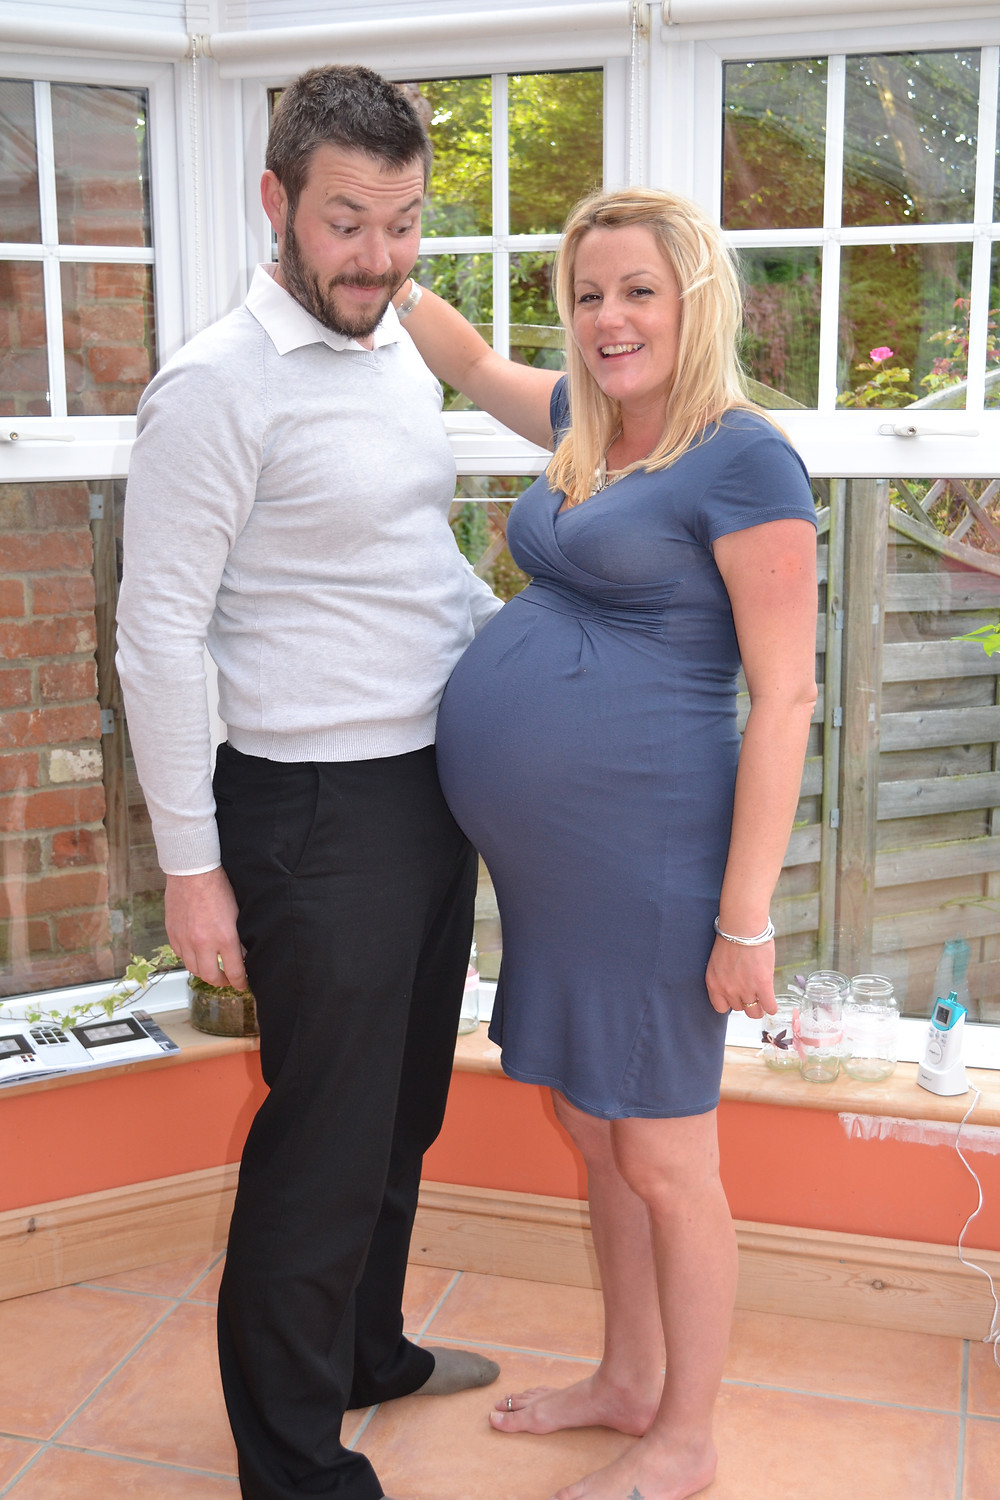 Nik looking impressed by the bump!